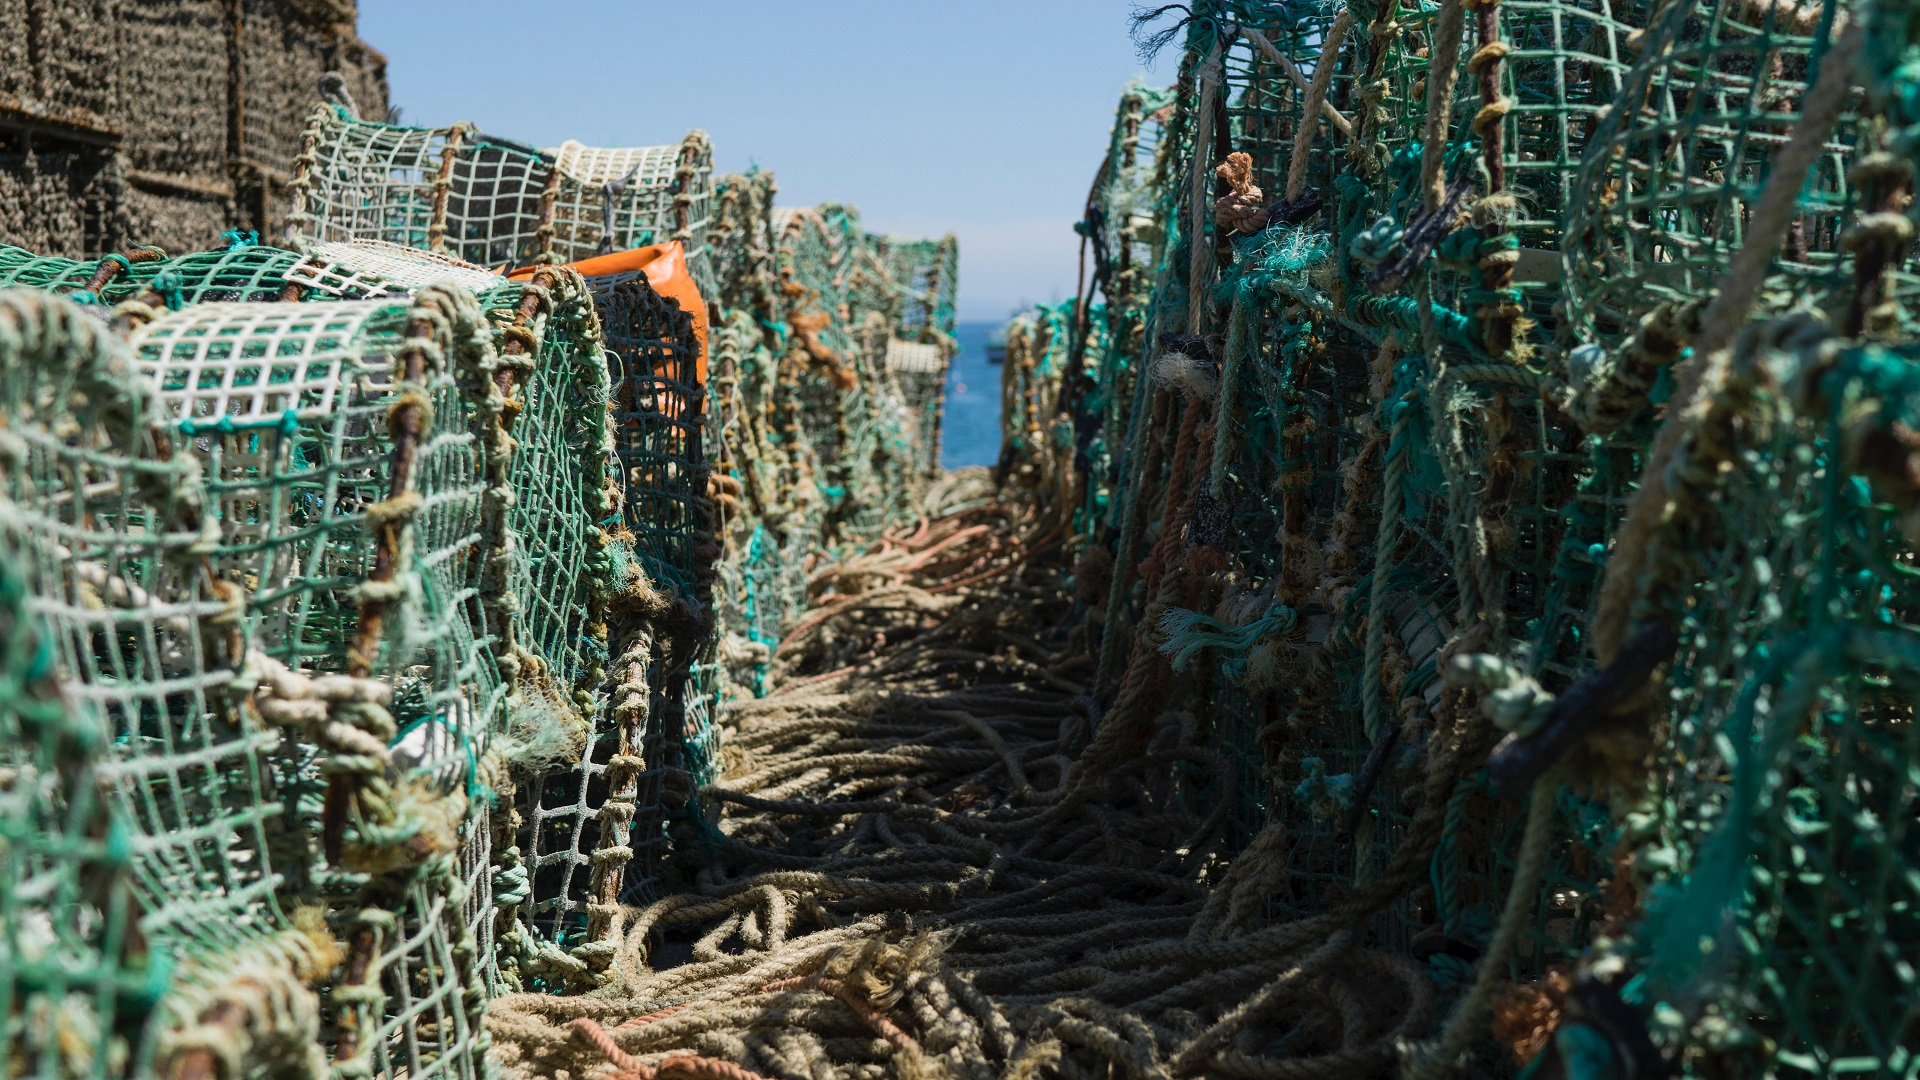 lobster pots and nets